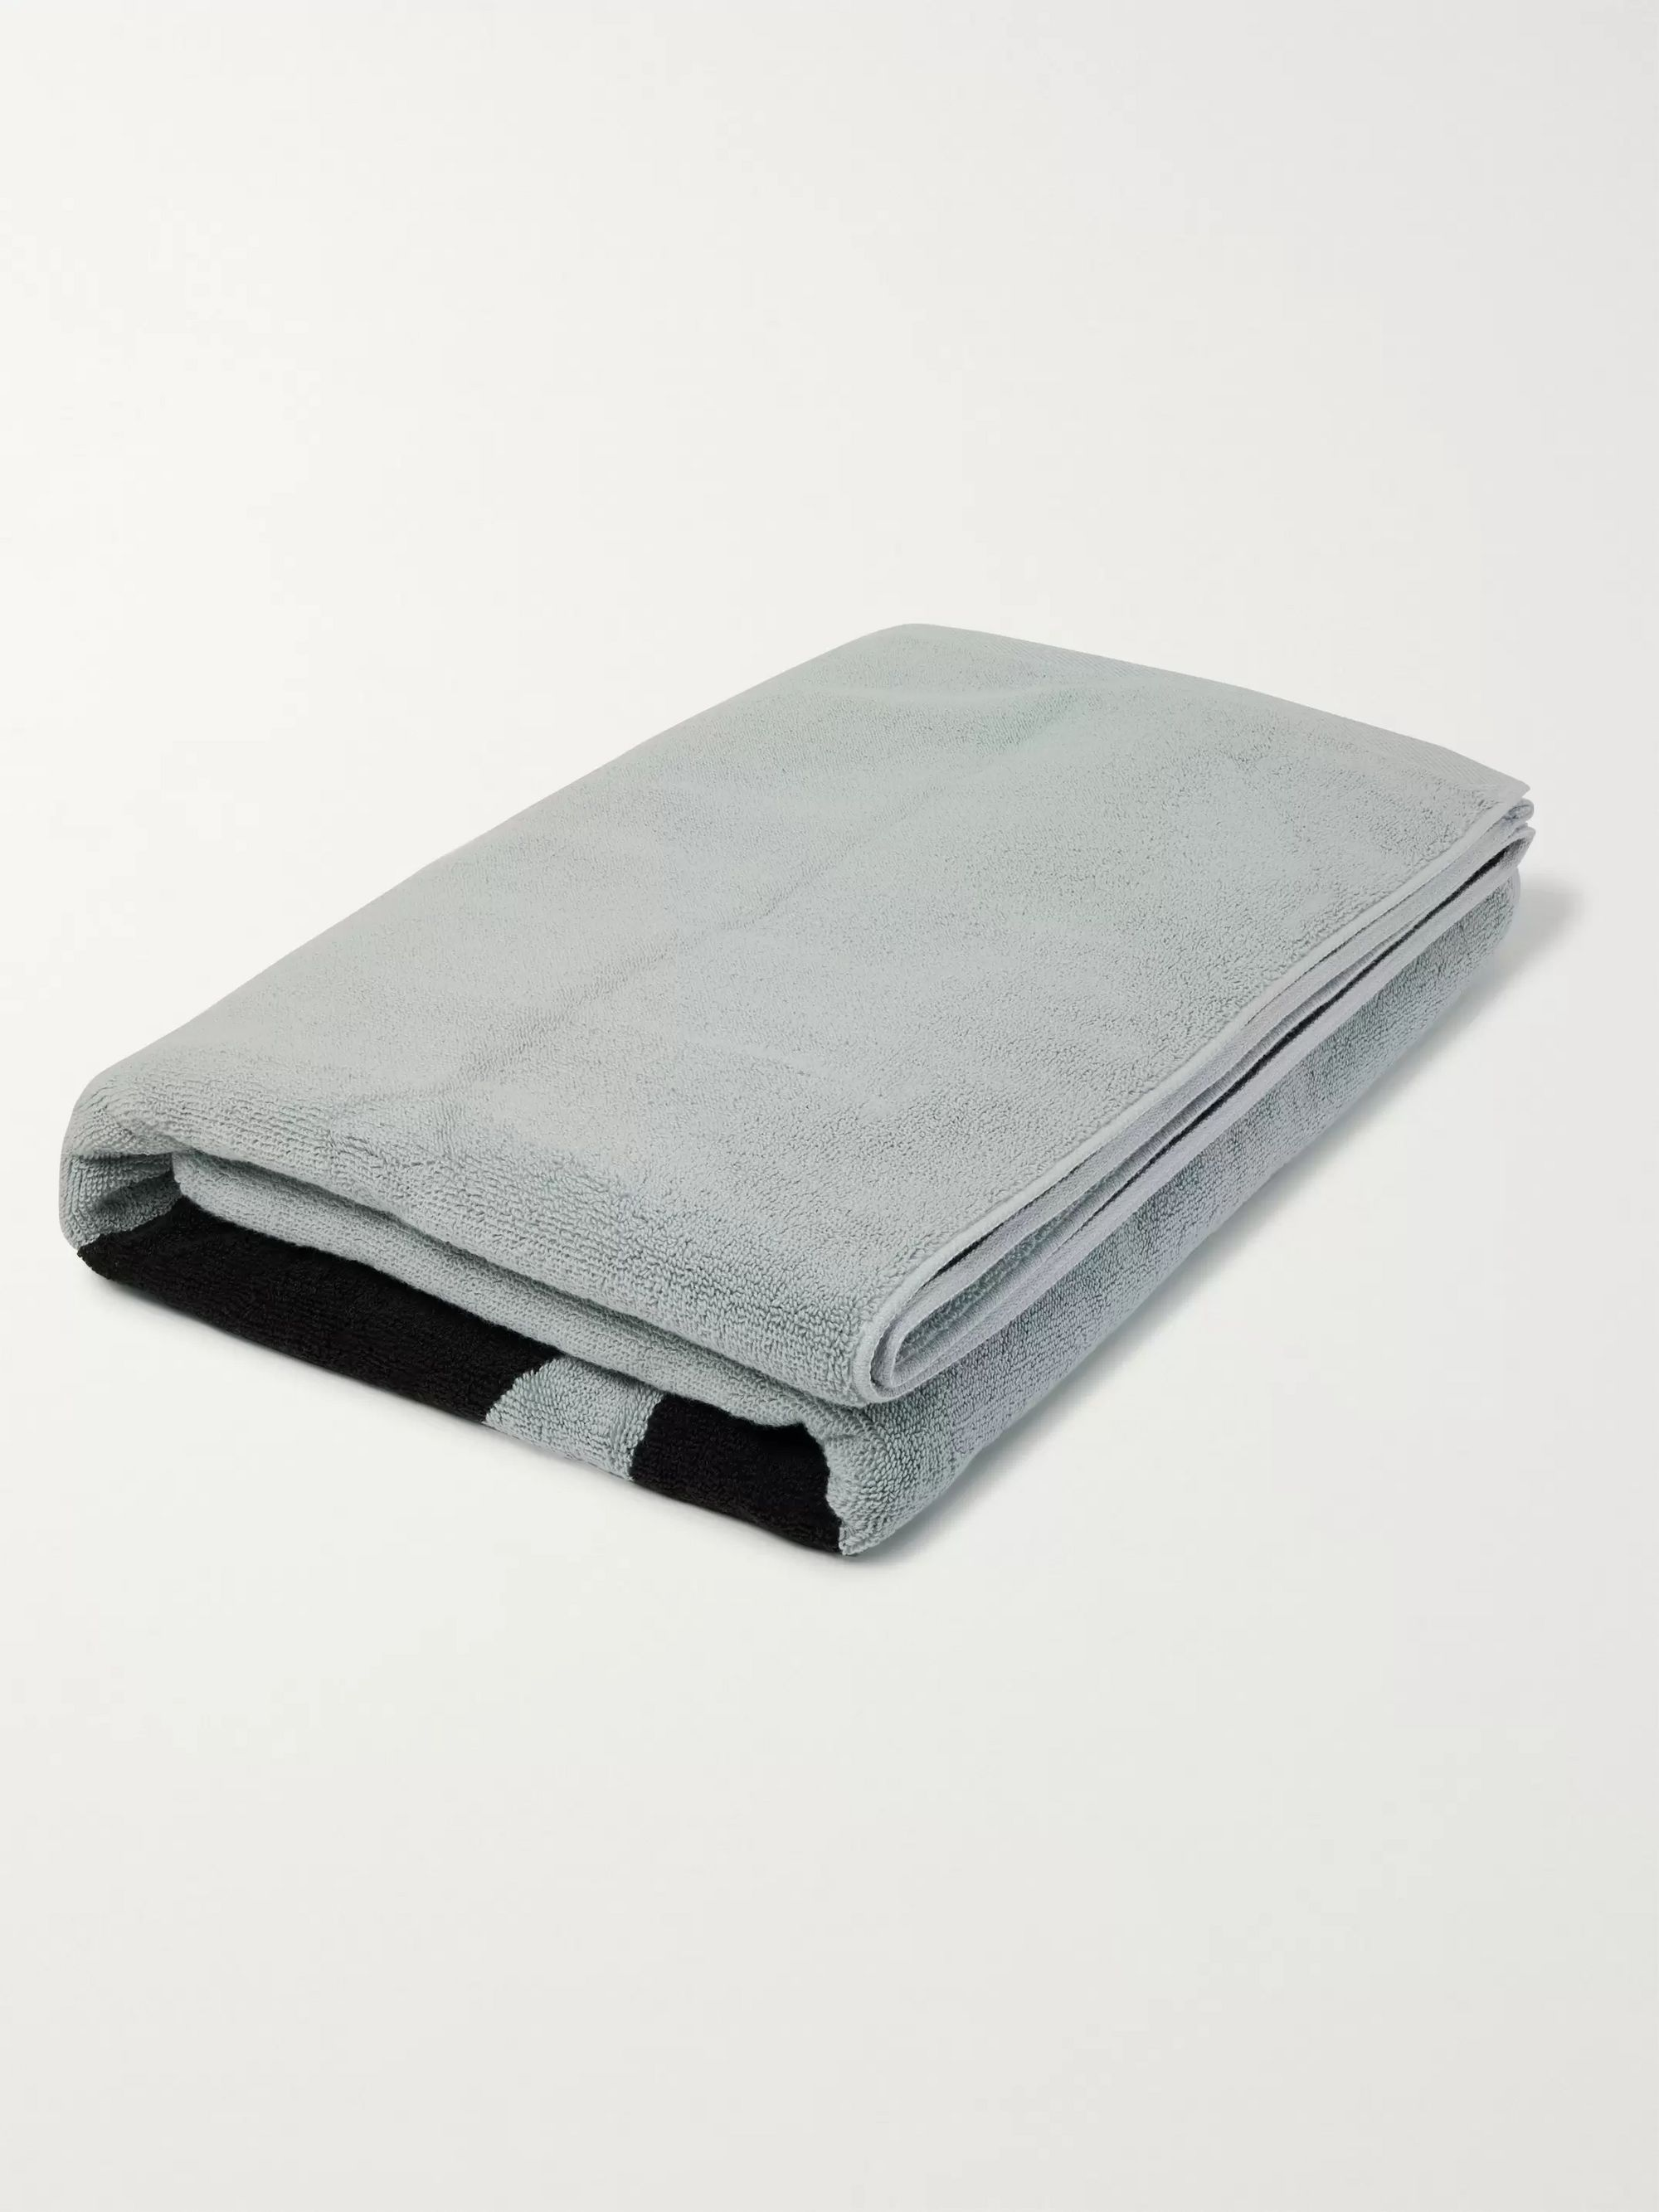 DISTRICT VISION + Reigning Champ Radical Retreat Printed Cotton-Blend Terry Towel